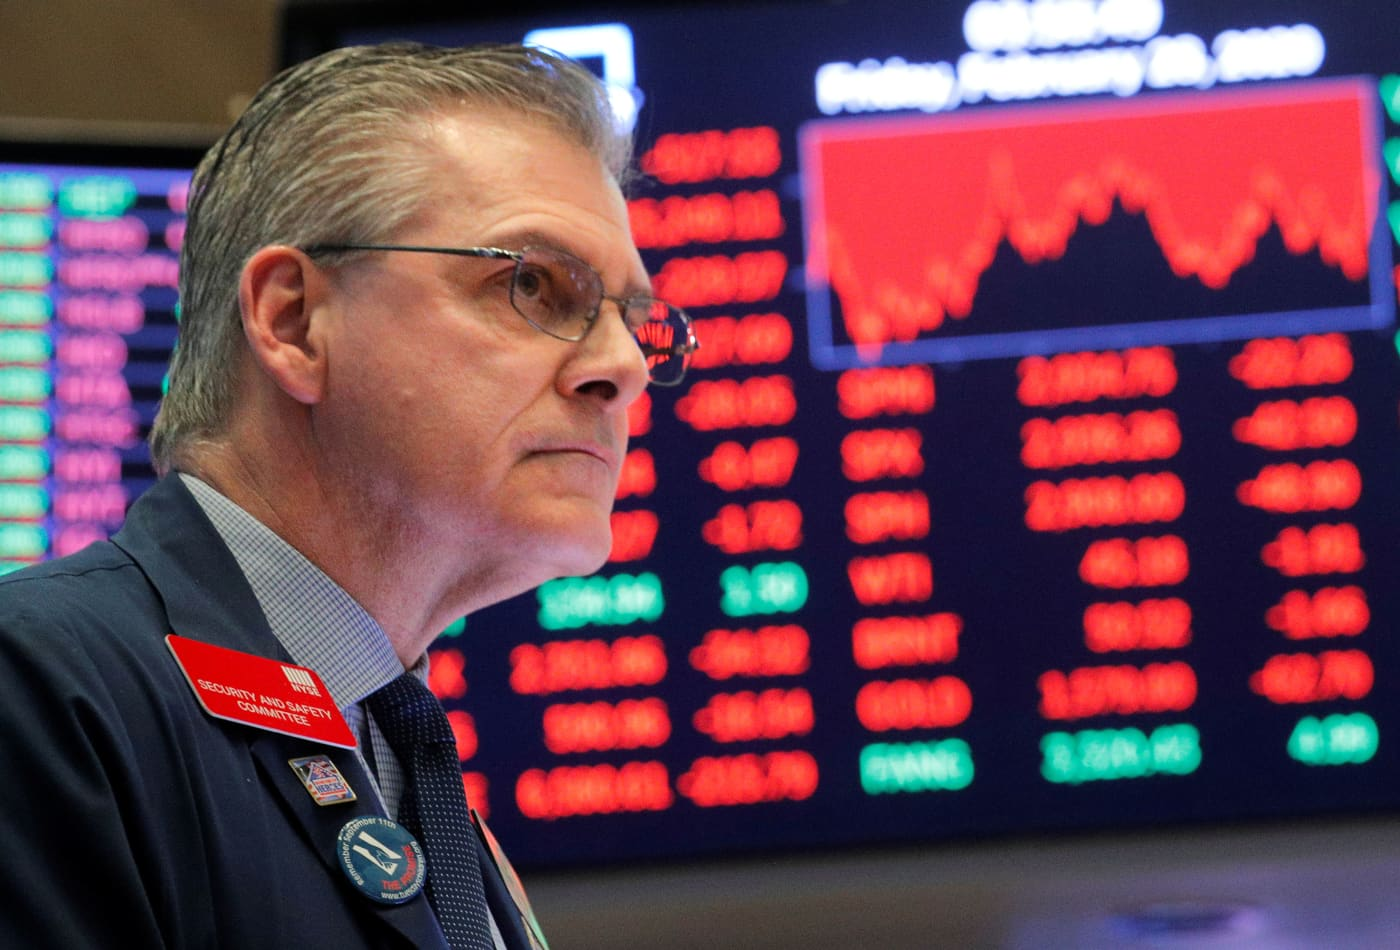 Here's why financial markets are tanking around the world